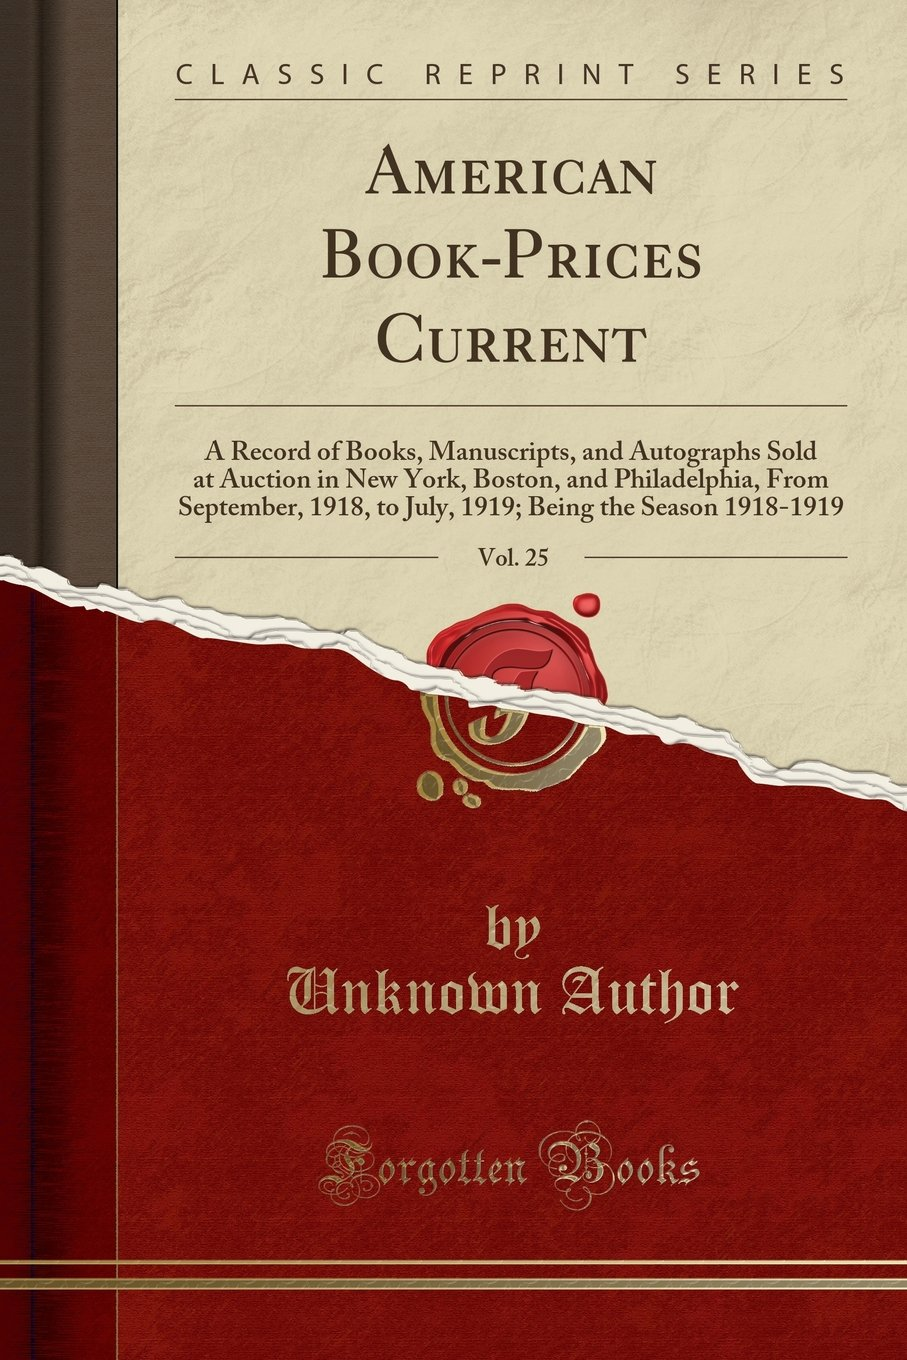 American Book-Prices Current, Vol. 25: A Record of Books, Manuscripts, and Autographs Sold at Auction in New York, Boston, and Philadelphia, from ... Being the Season 1918-1919 (Classic Reprint) PDF